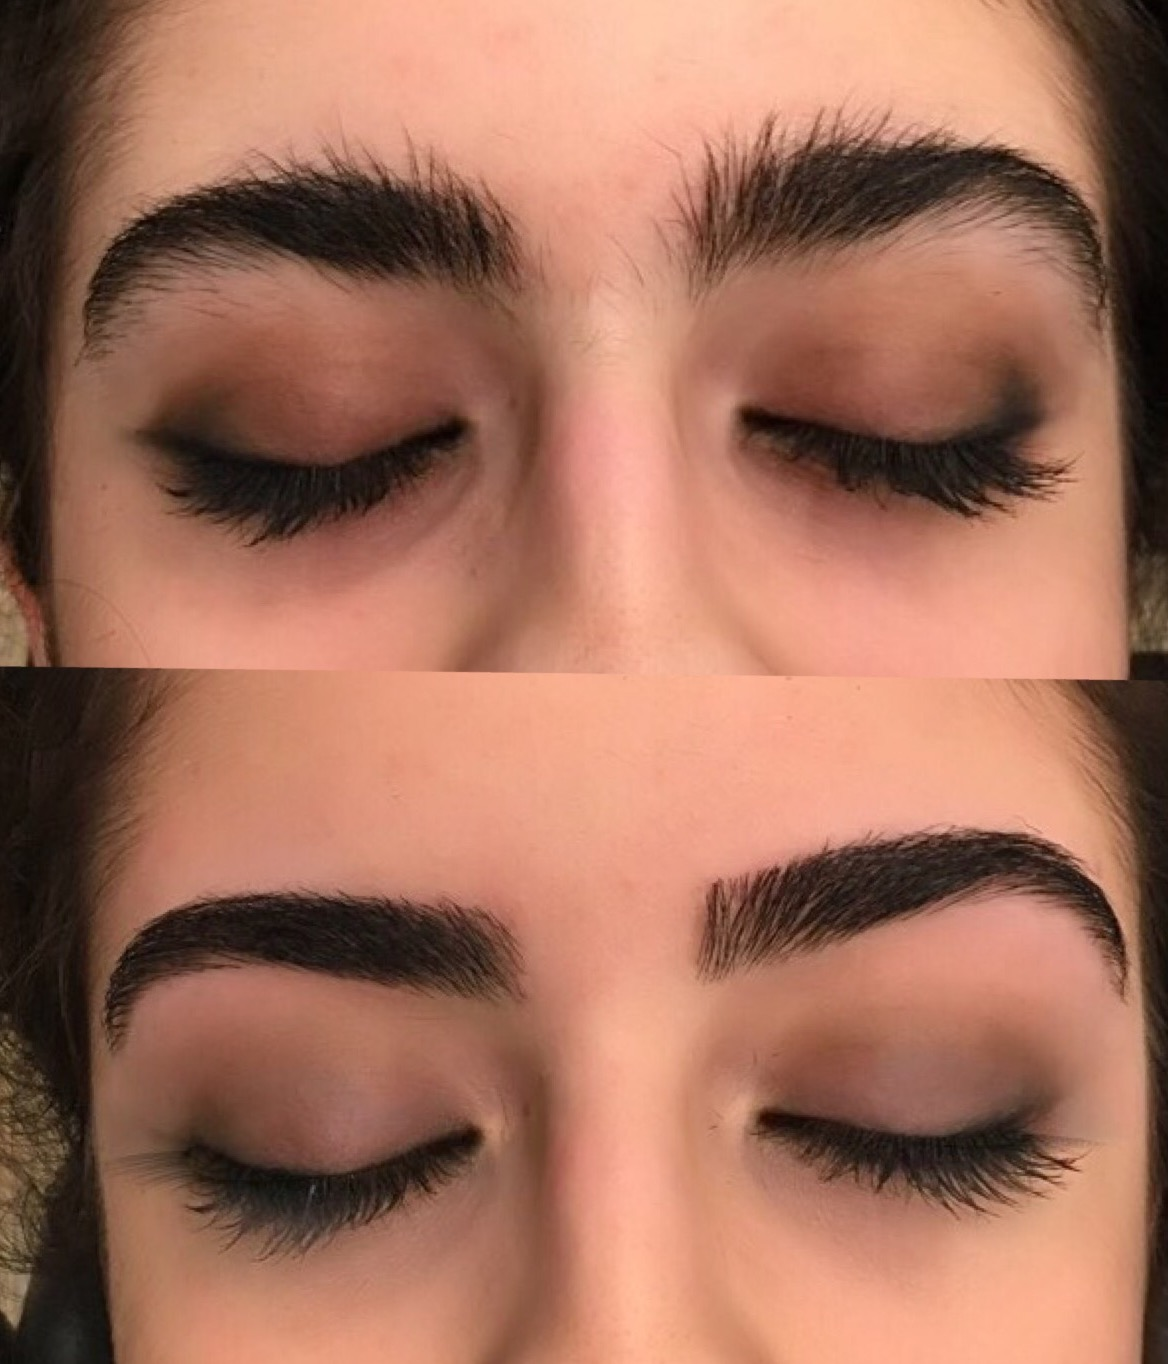 eyebrow shaping. eyebrow shaping s